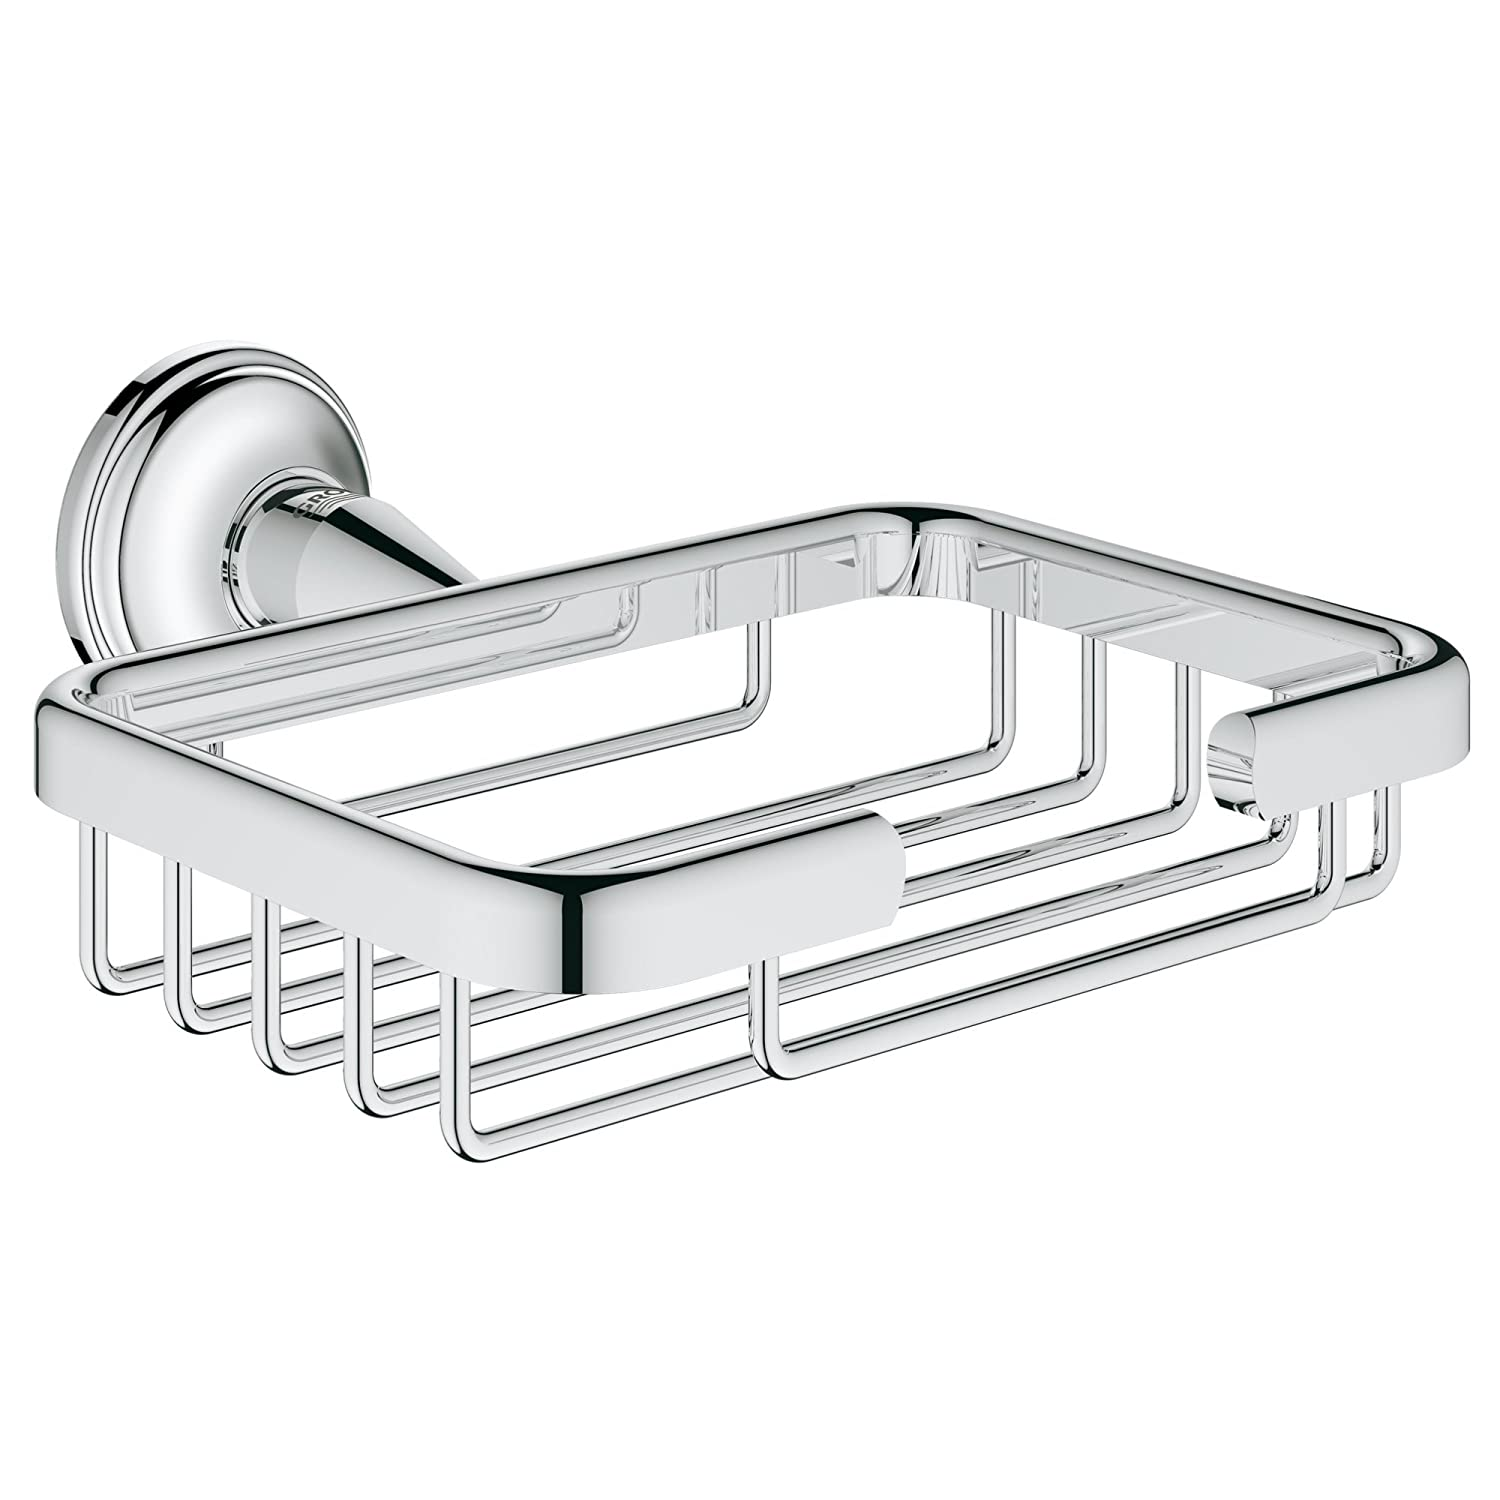 Grohe 40659001 Essentials Authentic Filing Basket in Starlight Chrome